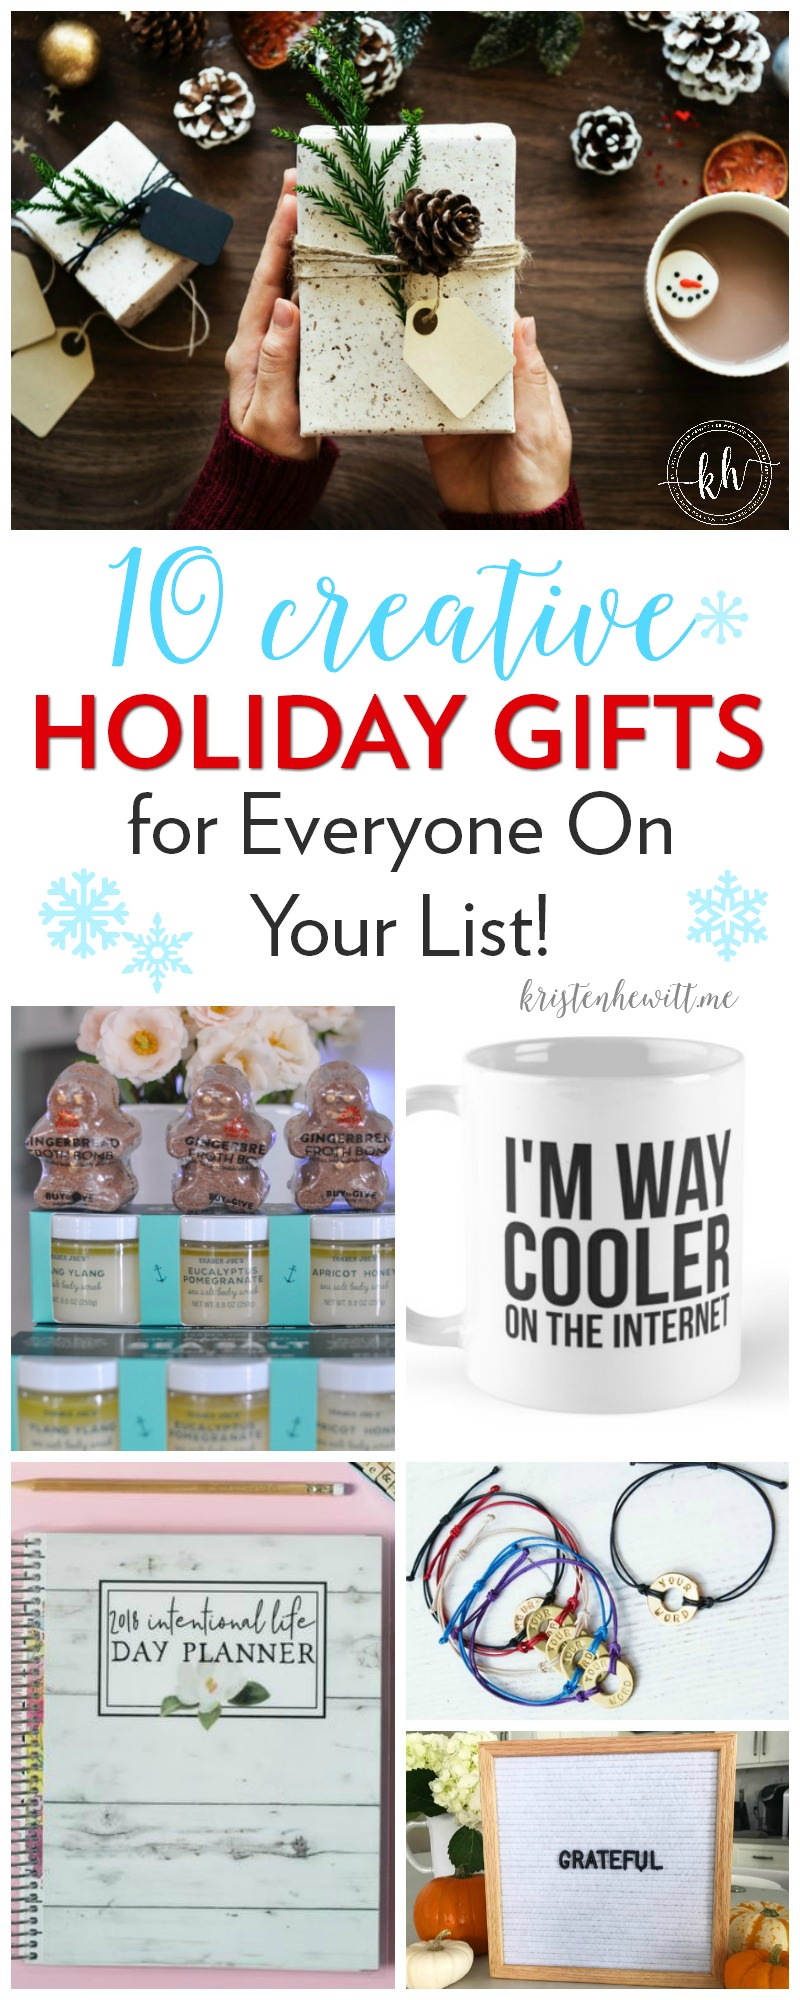 Looking for some holiday gifts this season that are creative and thoughtful and won't break the bank? Start here! Happy shopping!